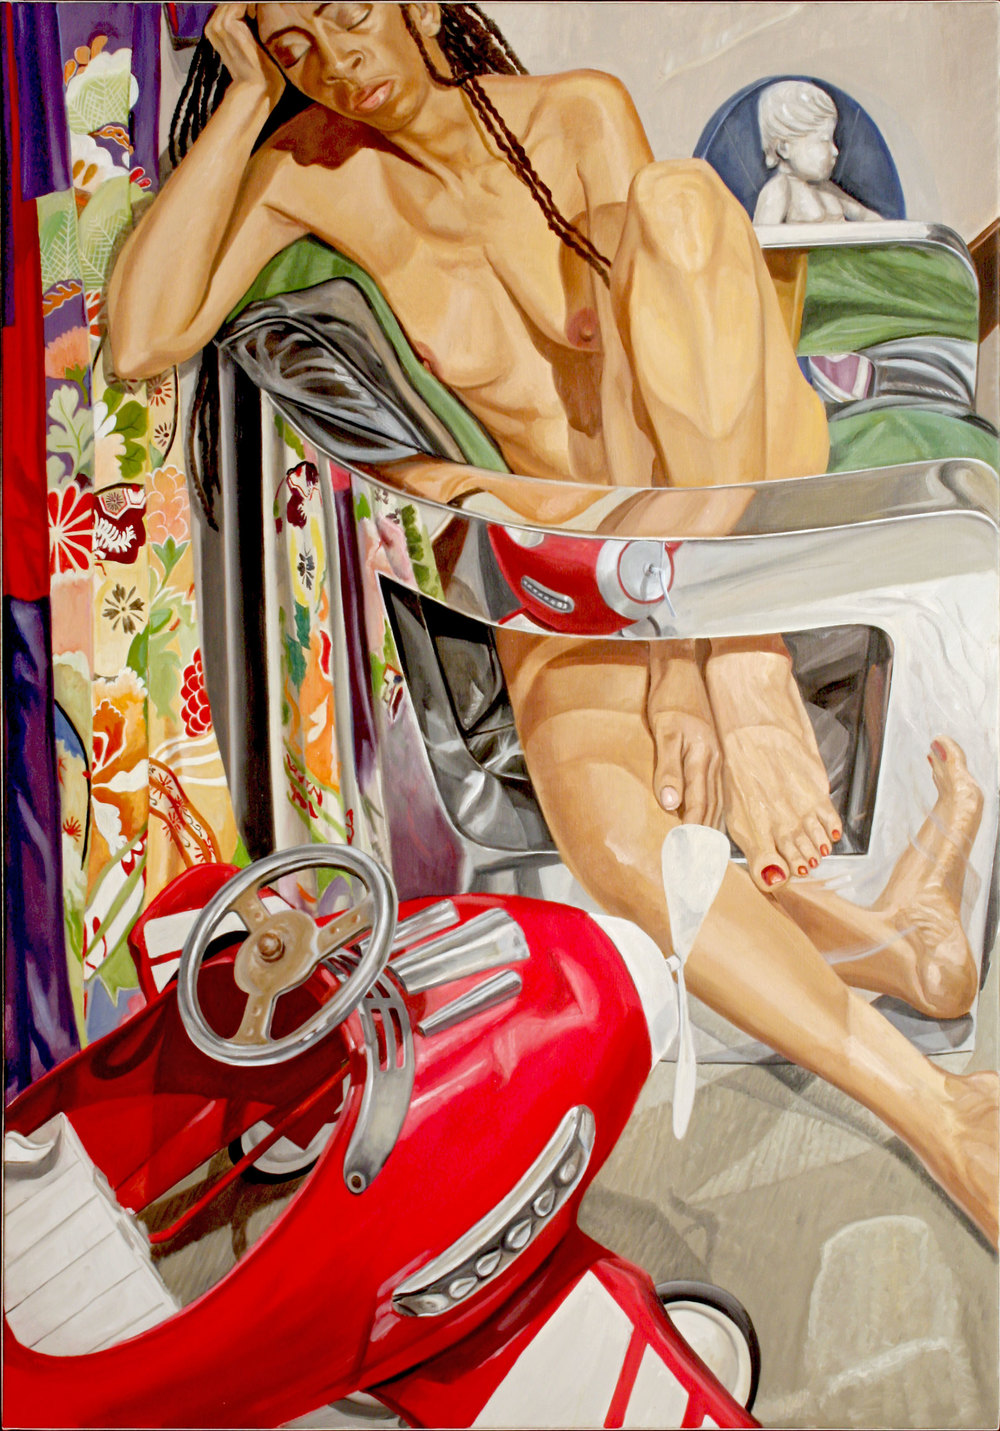 Model with Chrome Chair, Kiddie Car, Kimono and Bambino , 2008 Oil on canvas 60 x 42 inches